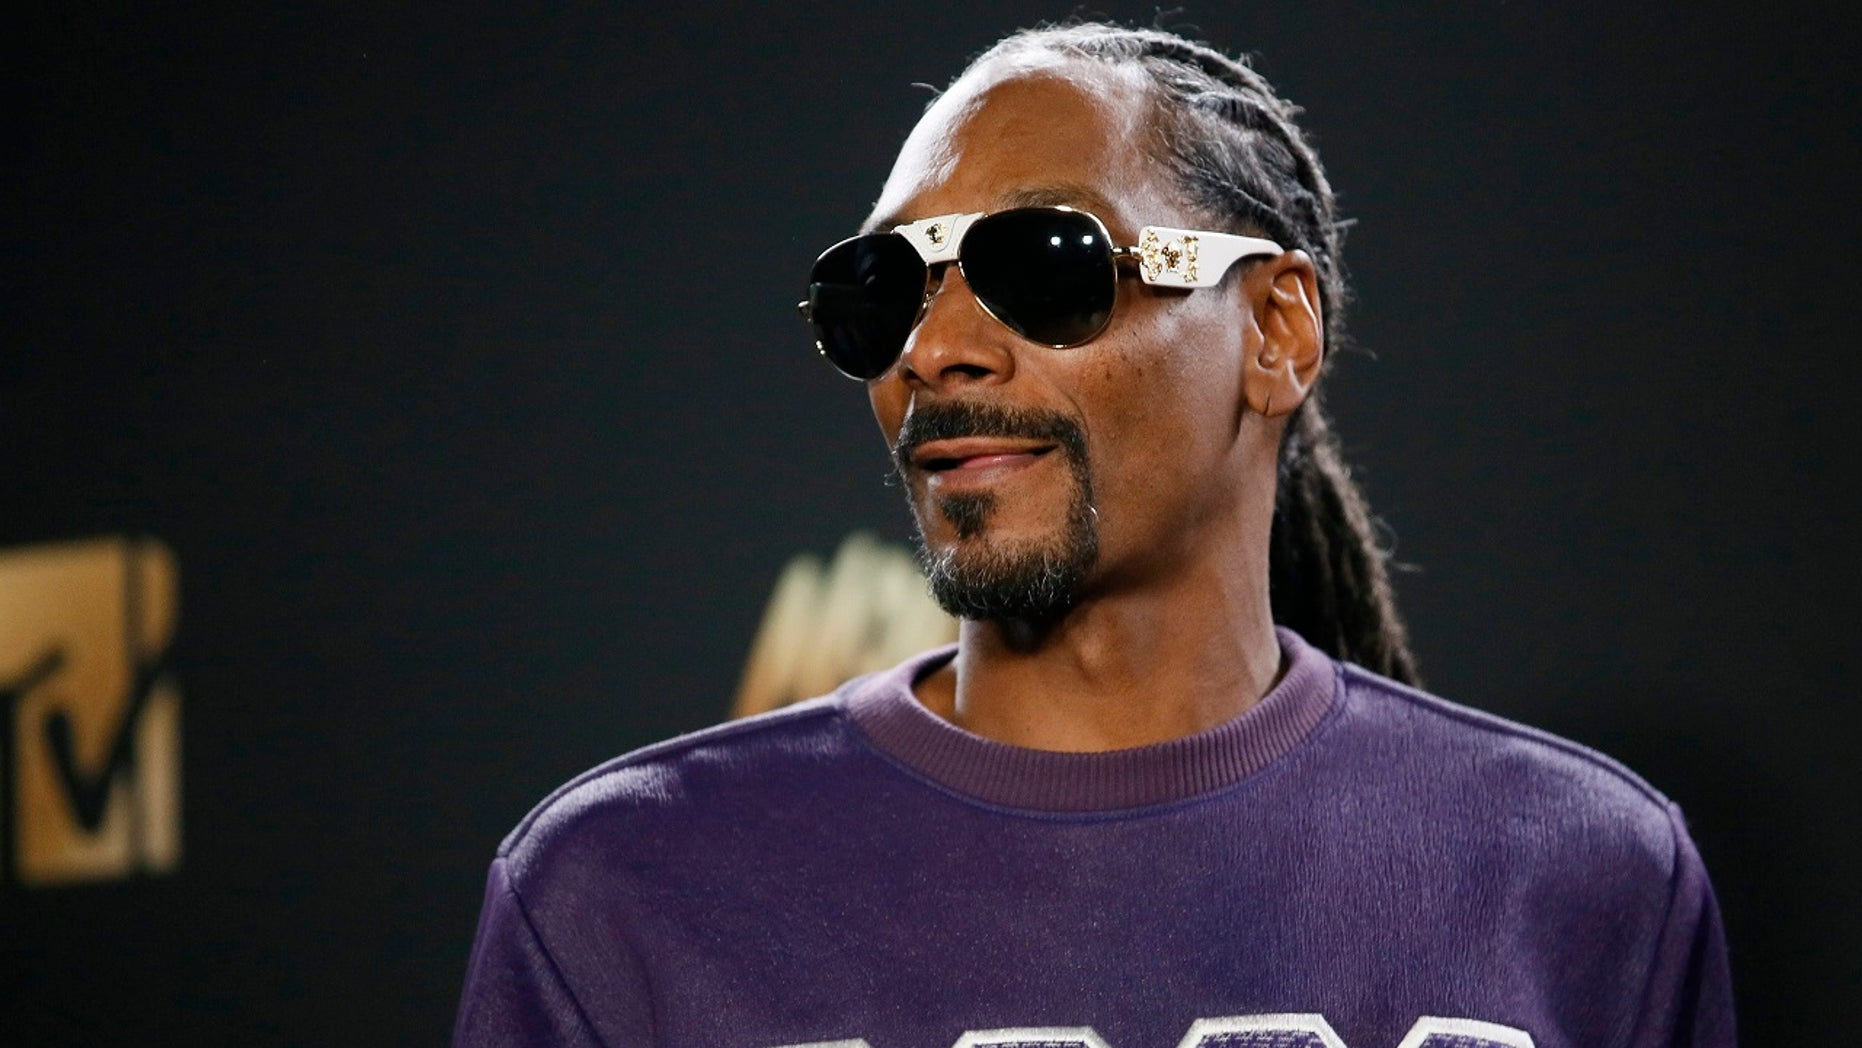 Snoop Dogg Christmas.Snoop Dogg Seeks To Help Rehome Dog That Was Abandoned Just